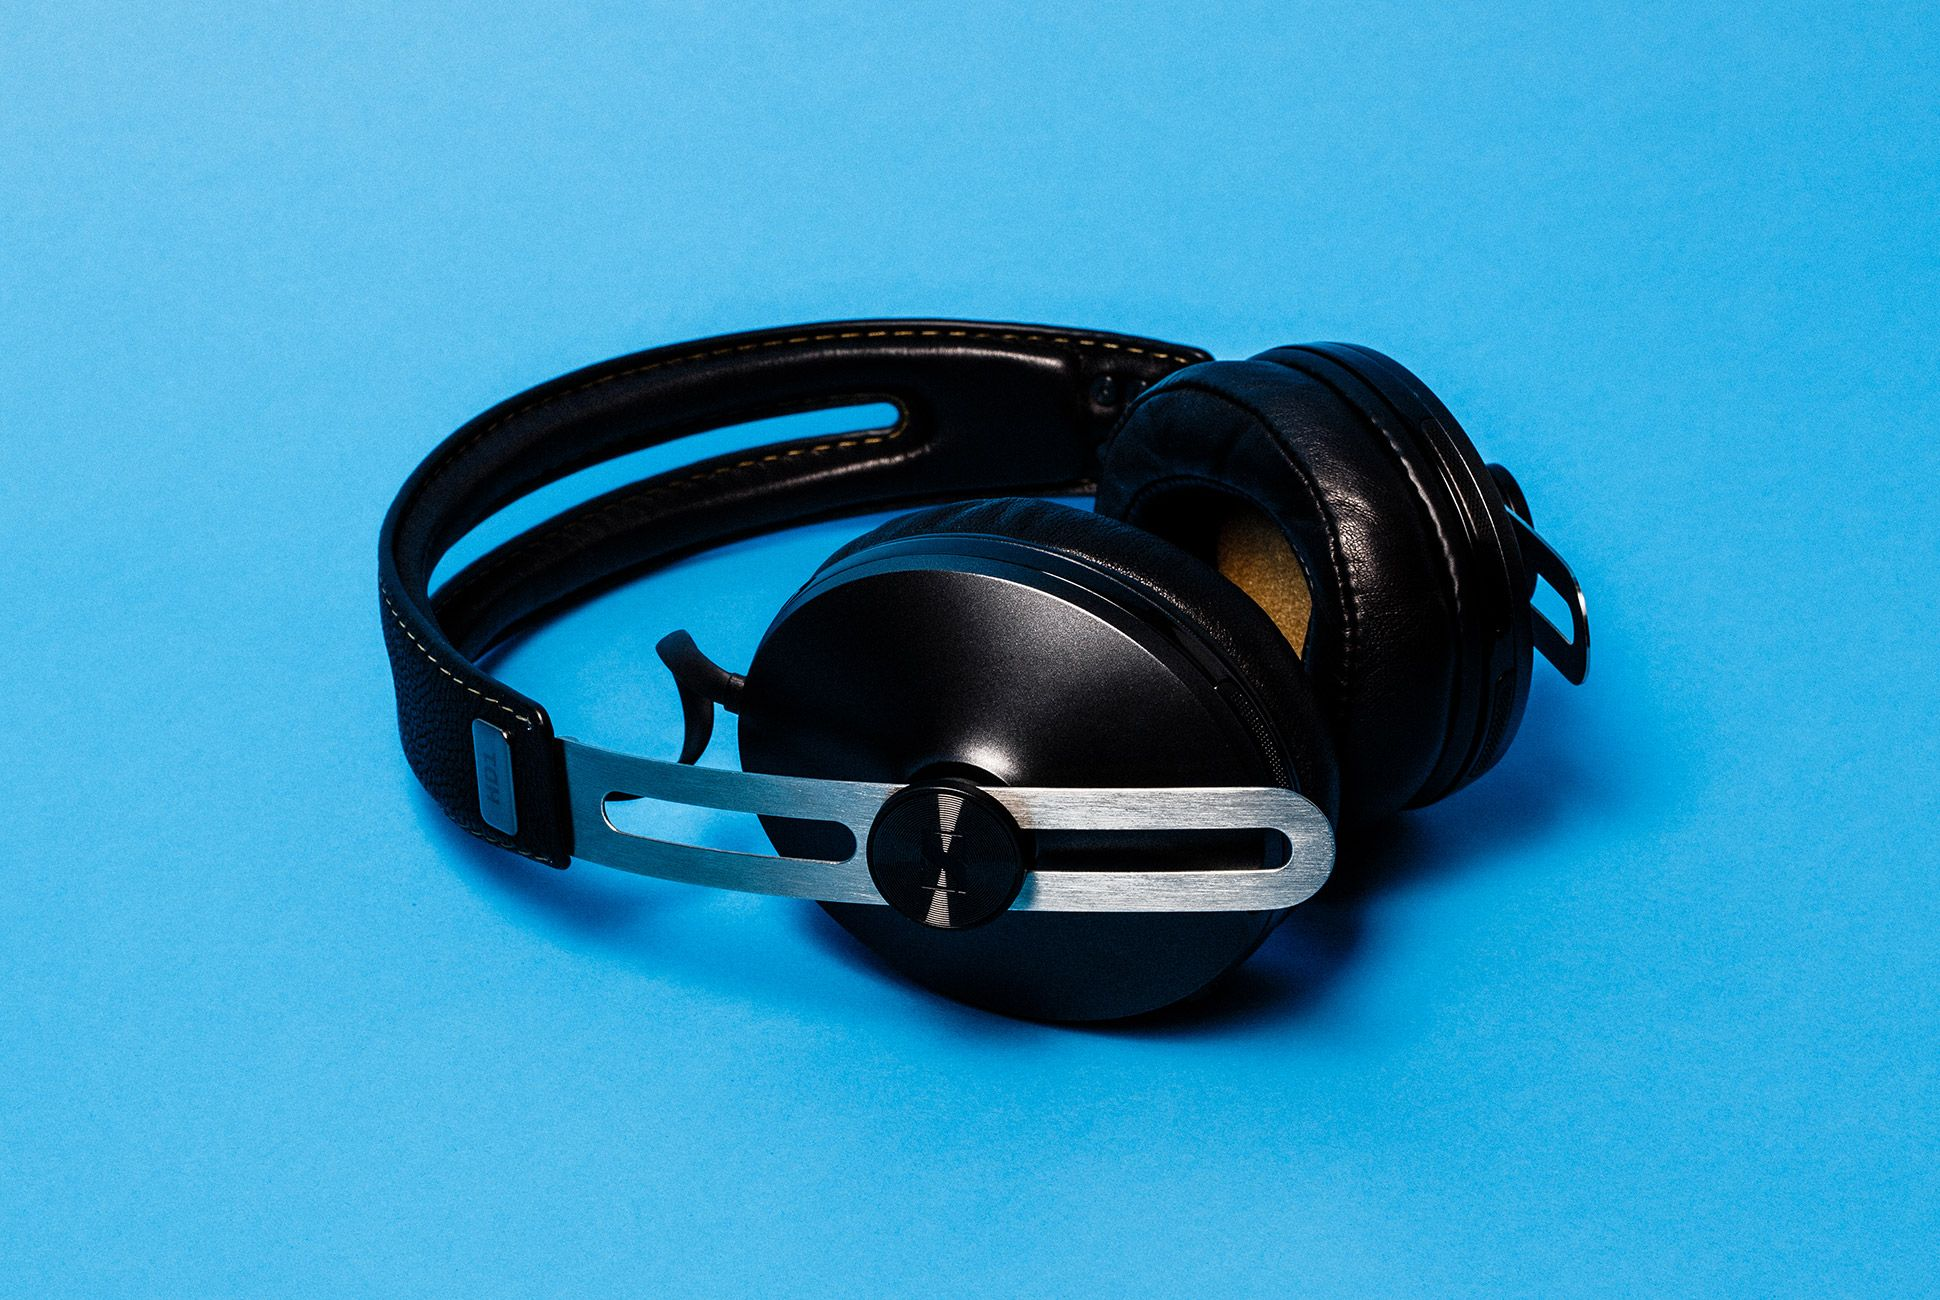 Sennheiser-HD1-Review-gear-patrol-1